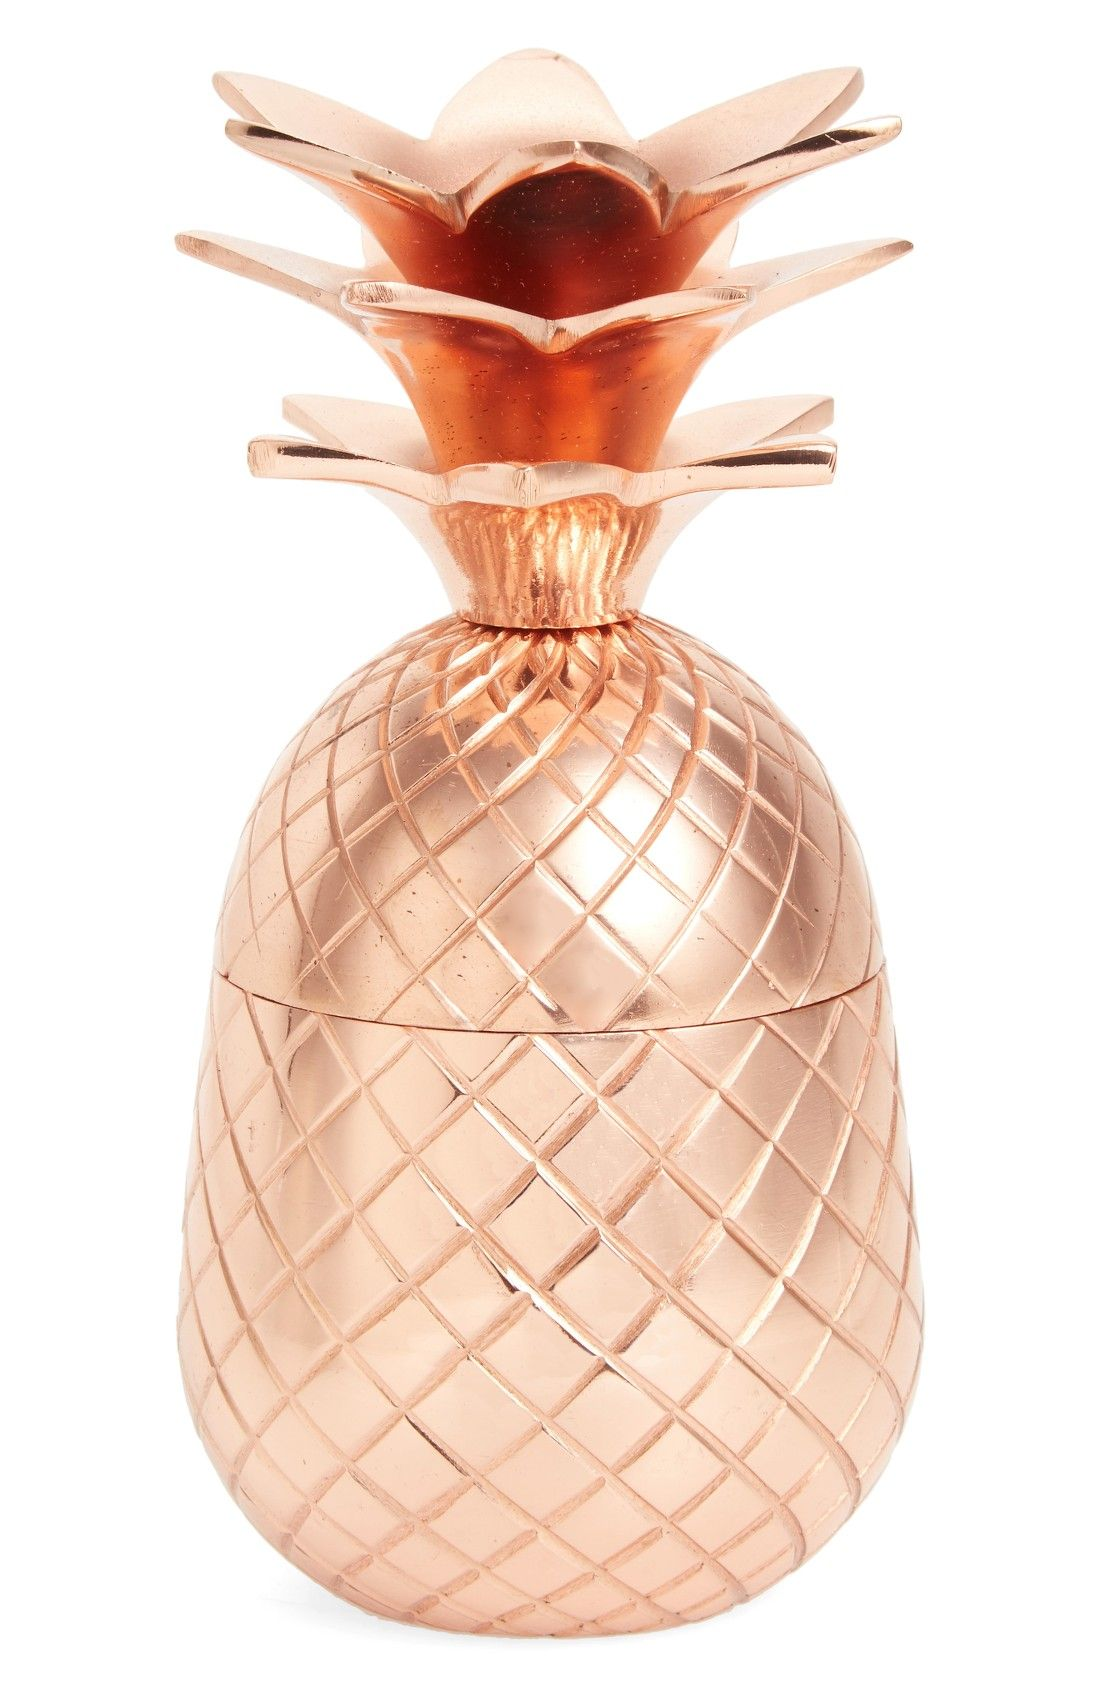 sweet pineapple objet #giftstyle